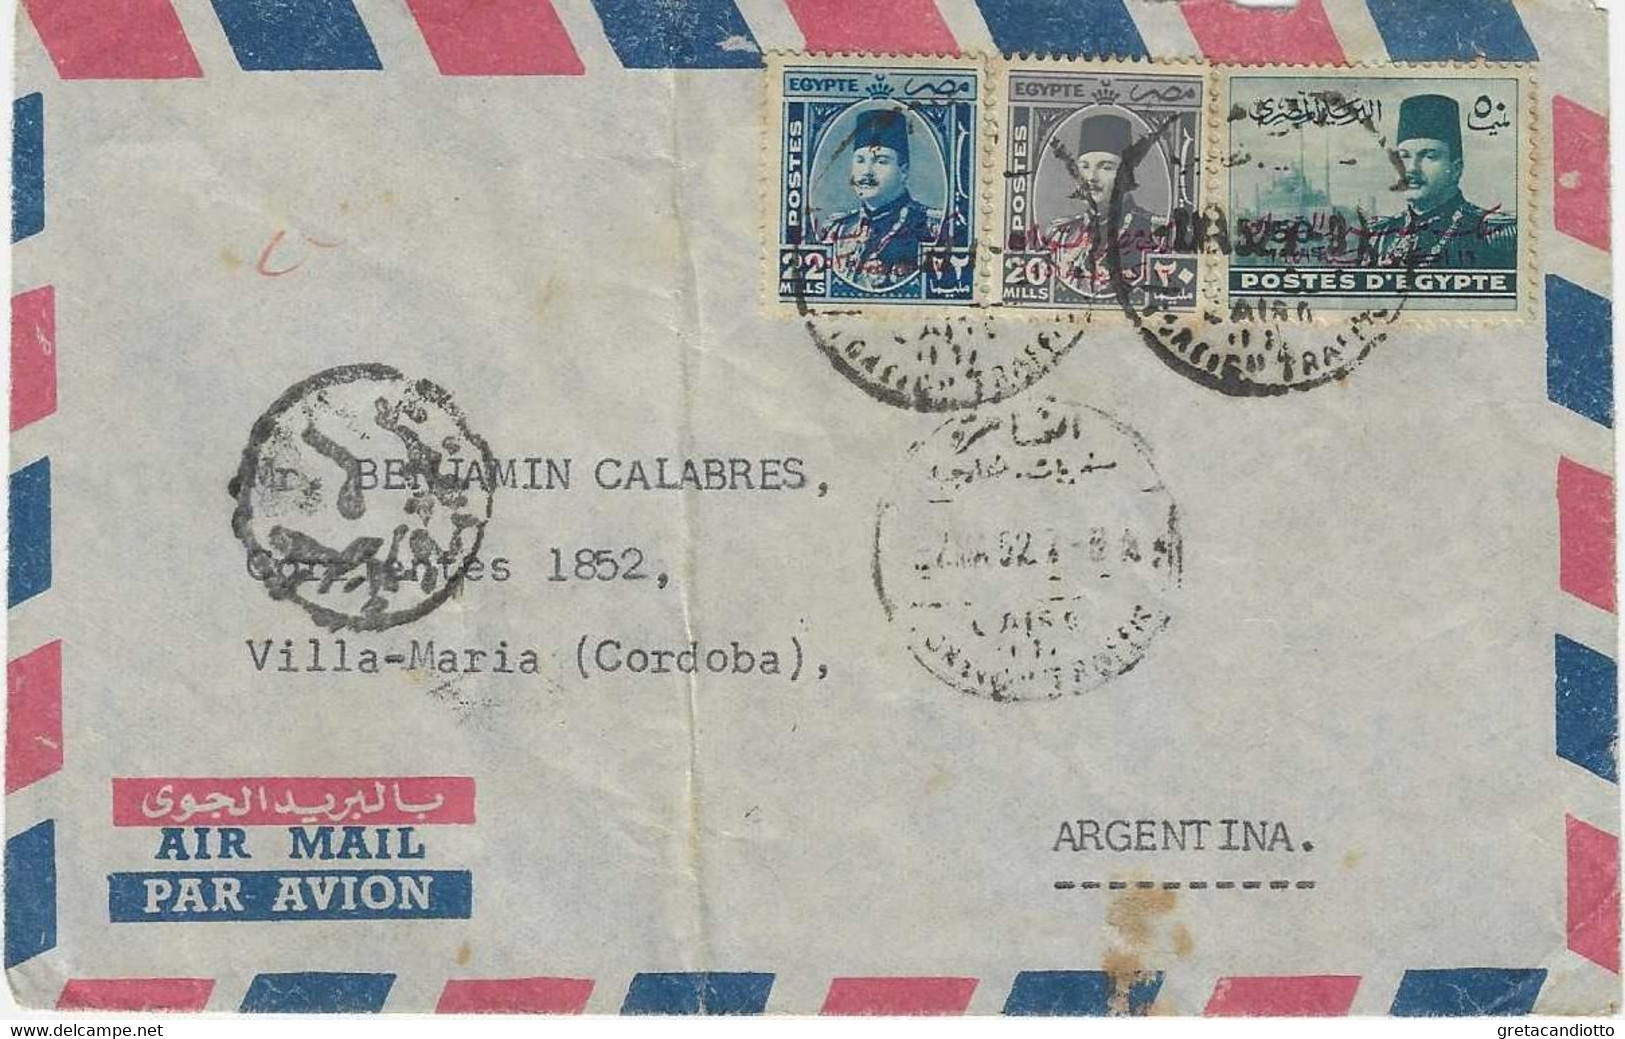 Egypt 1952, Airmail Sent From Heliópolis On 03/02/1952 To Villa Maria, Cordoba, Argentina. Reception Mark Back - Covers & Documents